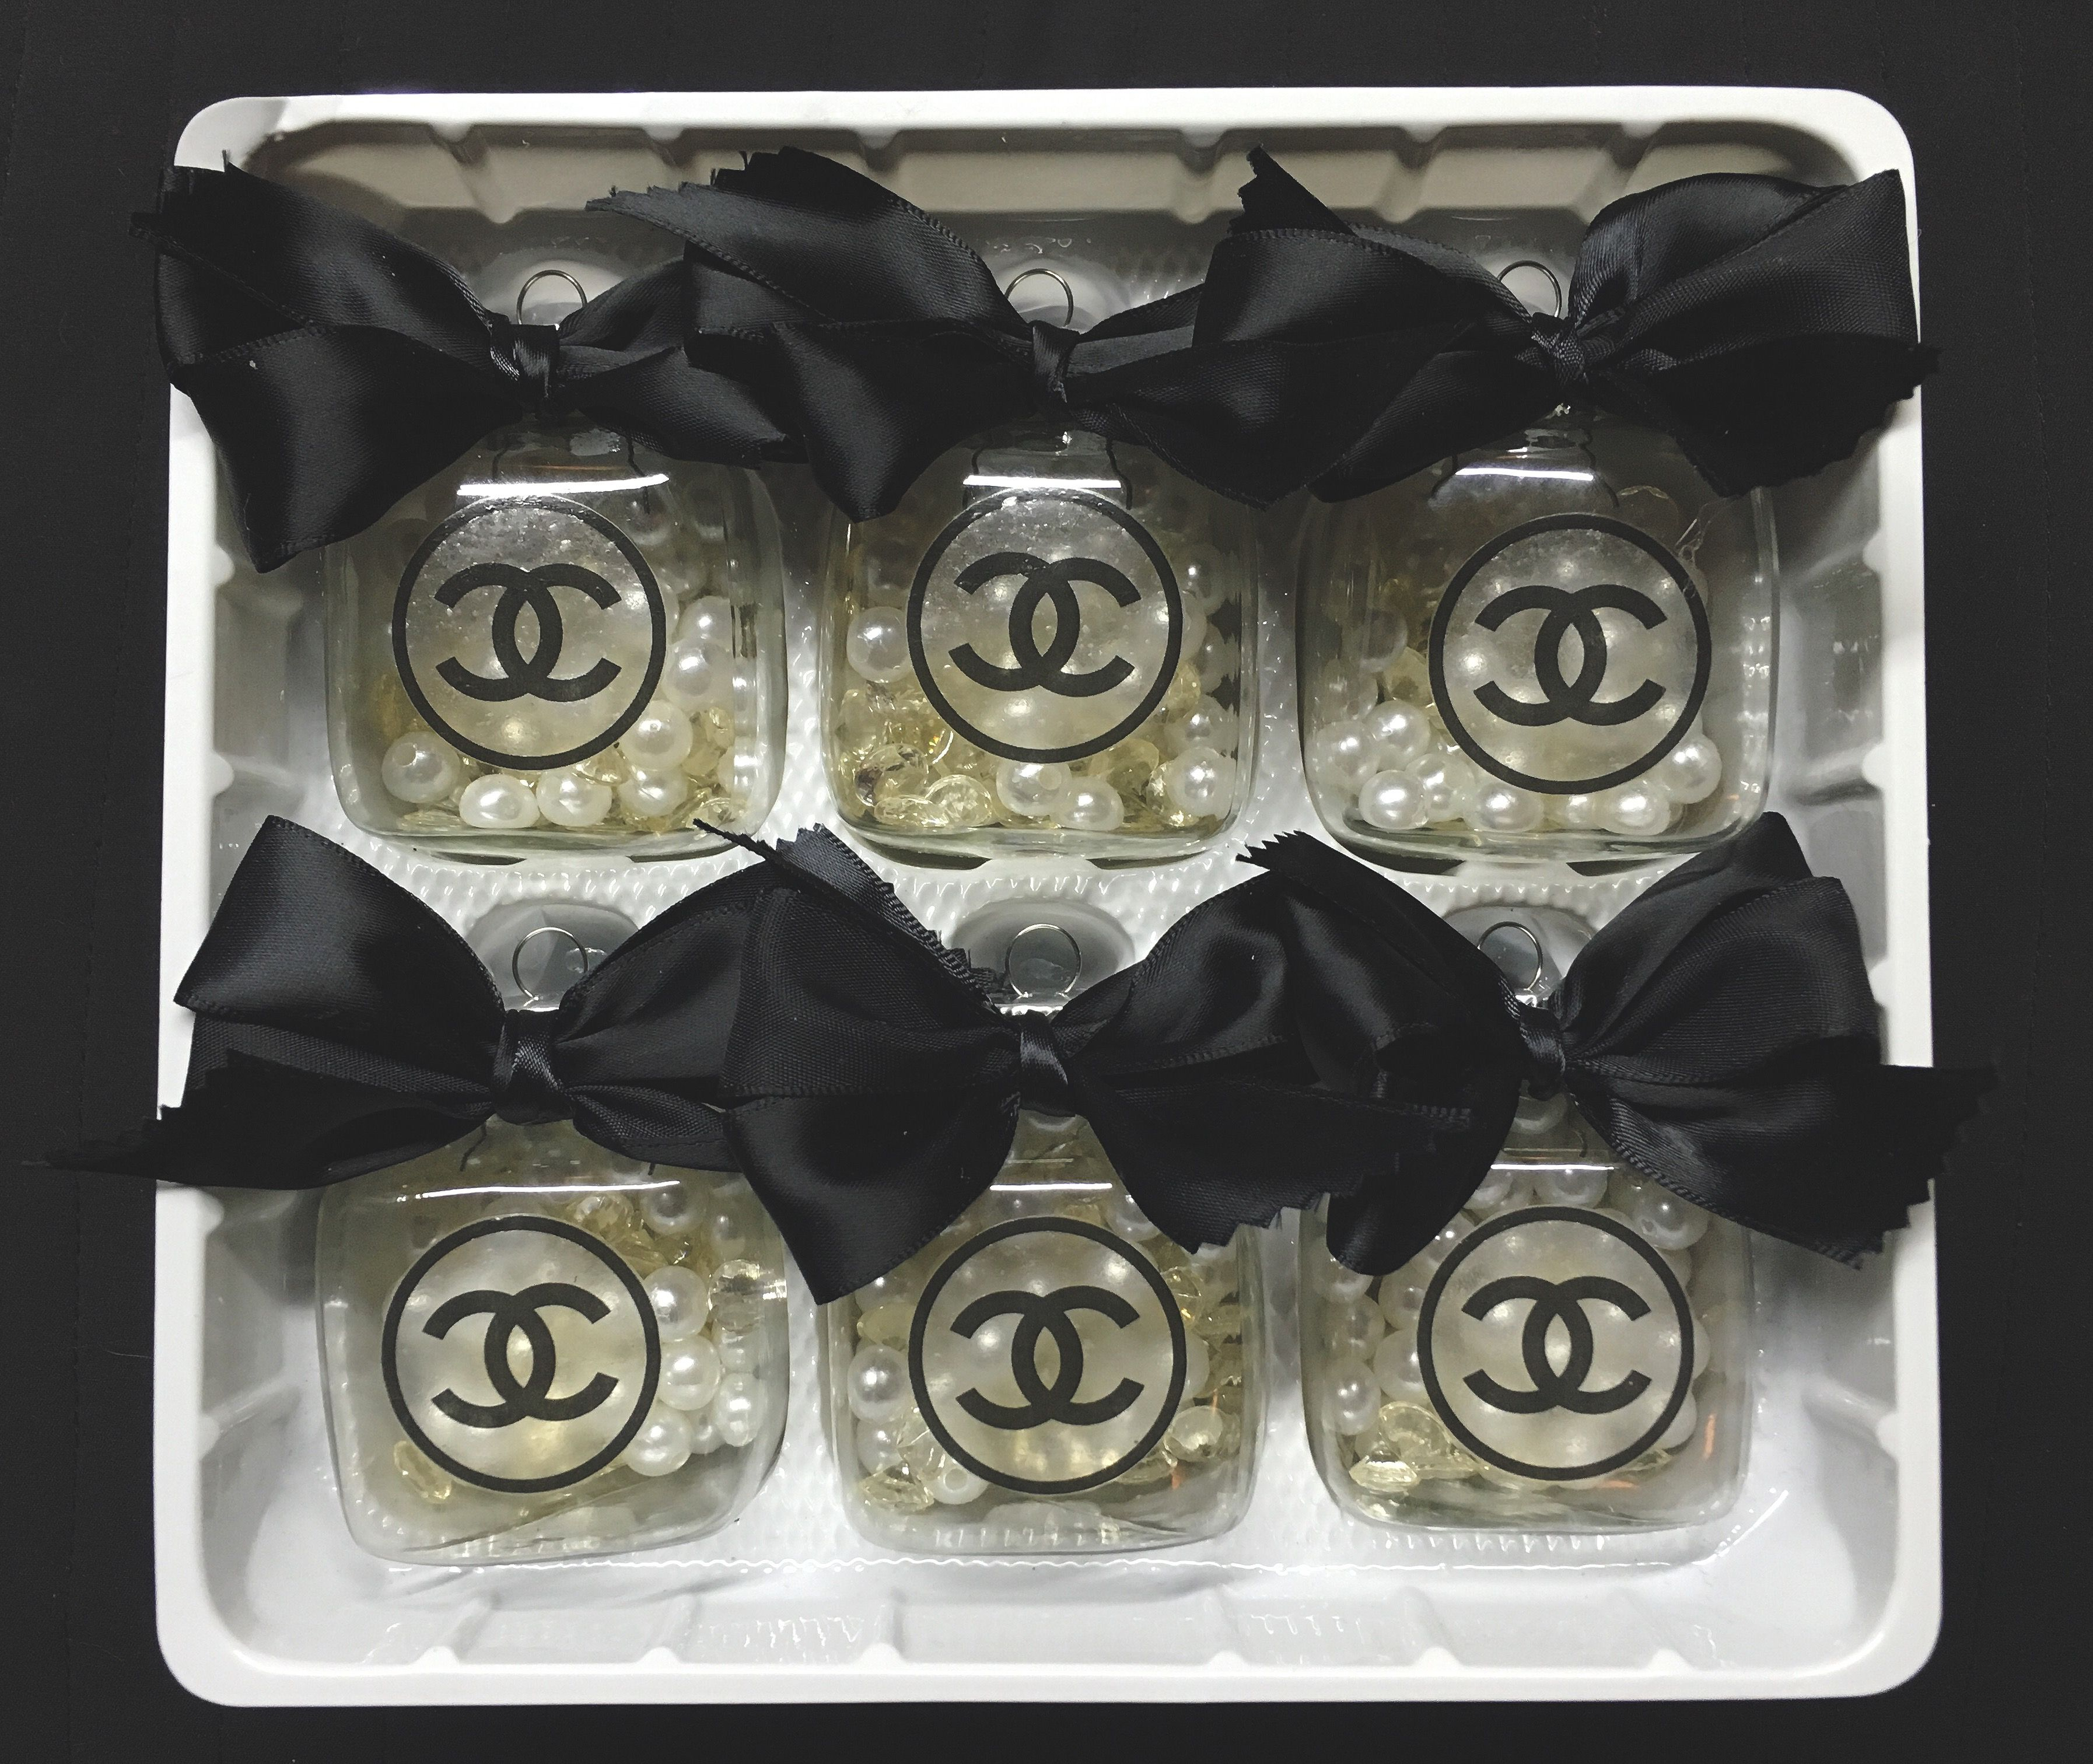 Chanel Christmas Ornaments.Details About Christmas Ornaments Holiday Decor